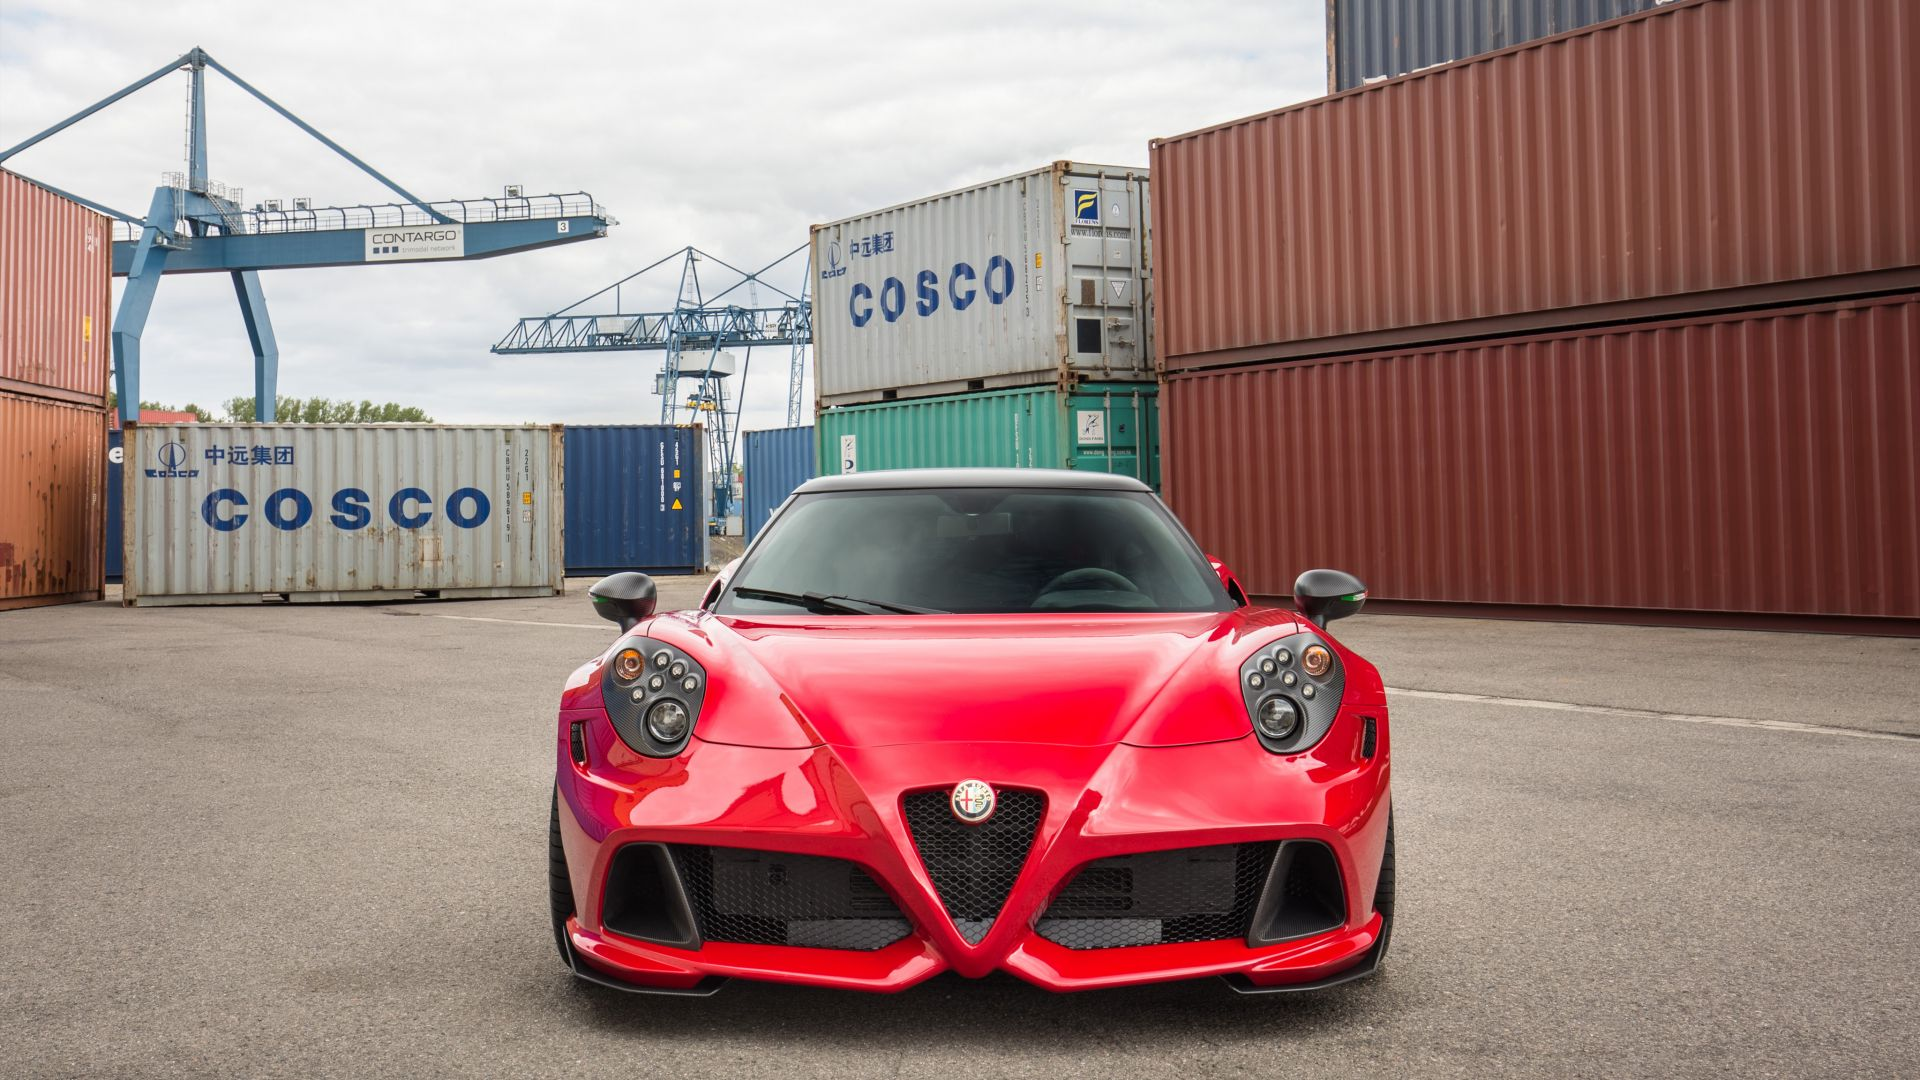 Alfa Romeo Zender, Alfa Romeo, red, sports car, Frankfurt 2015, cars 2016 (horizontal)